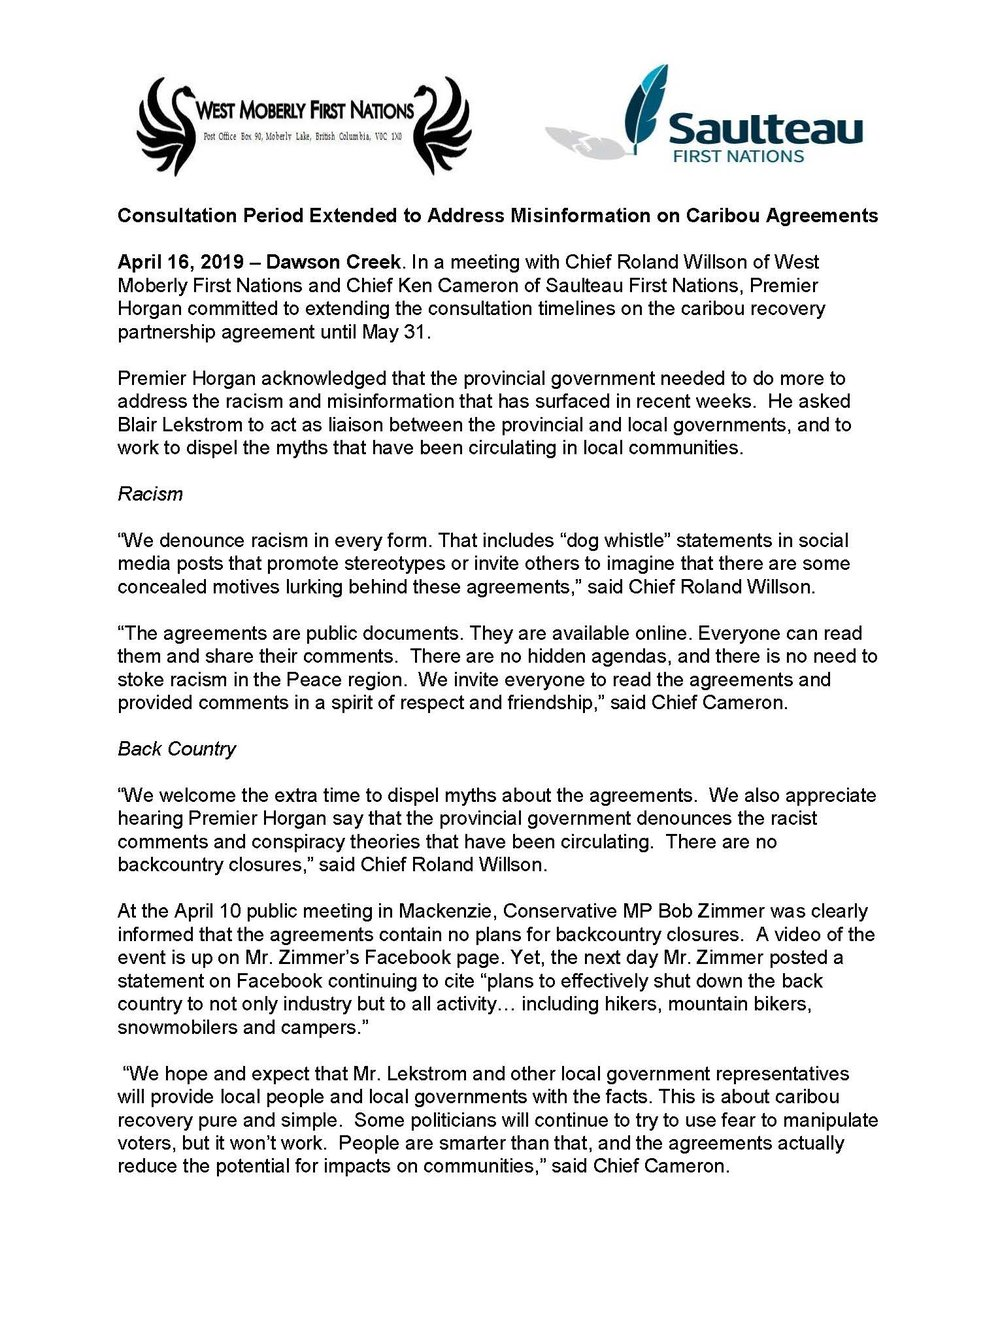 News Release Apr 16-Consultation Period Extended to Address Misinformation on Caribou Agreements_Page_1.jpg